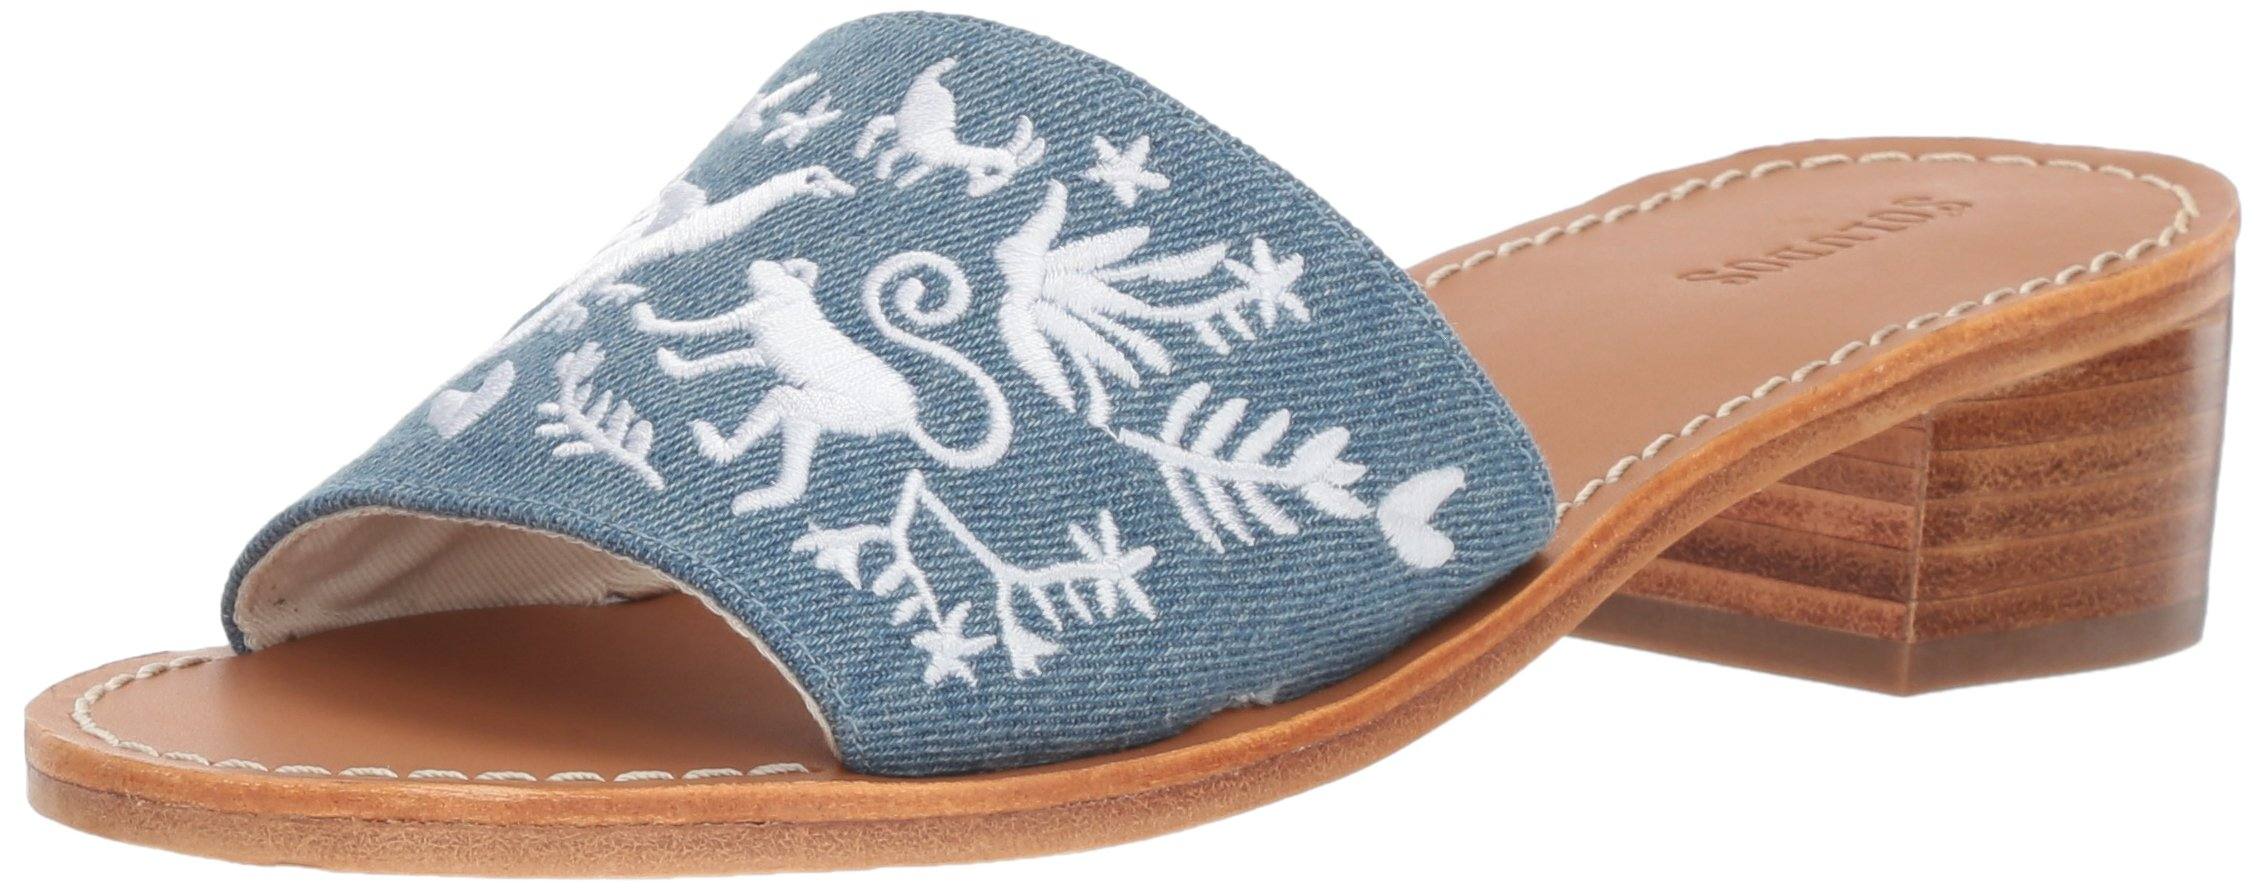 Soludos Women's Otomi City Slide Sandal, Medium Denim, 7.5 B US